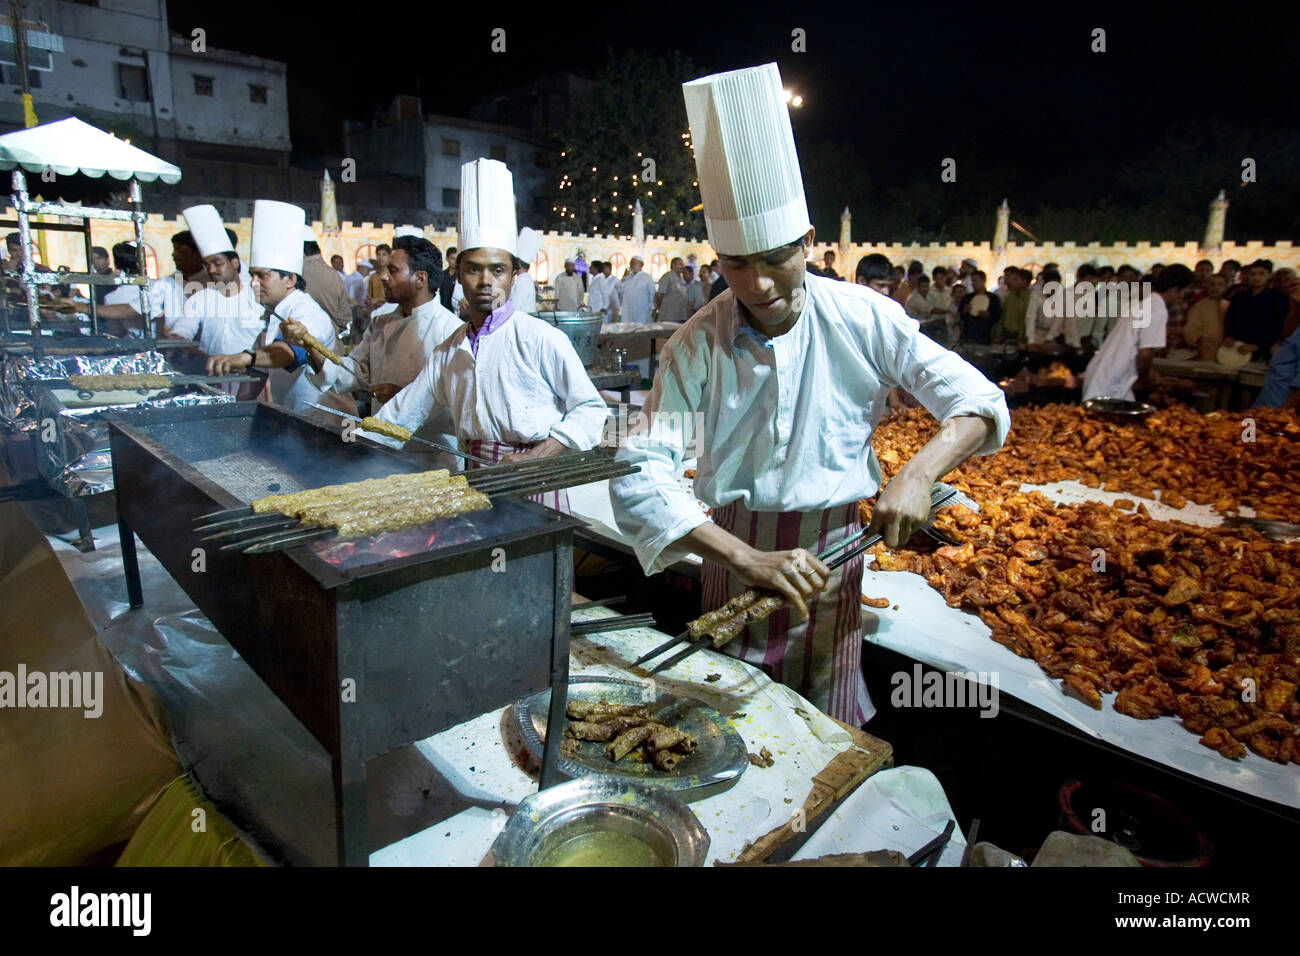 Chefs at work at the  Wedding of the son of the imam of Delhi India with soldiers and 2000 guests - Stock Image